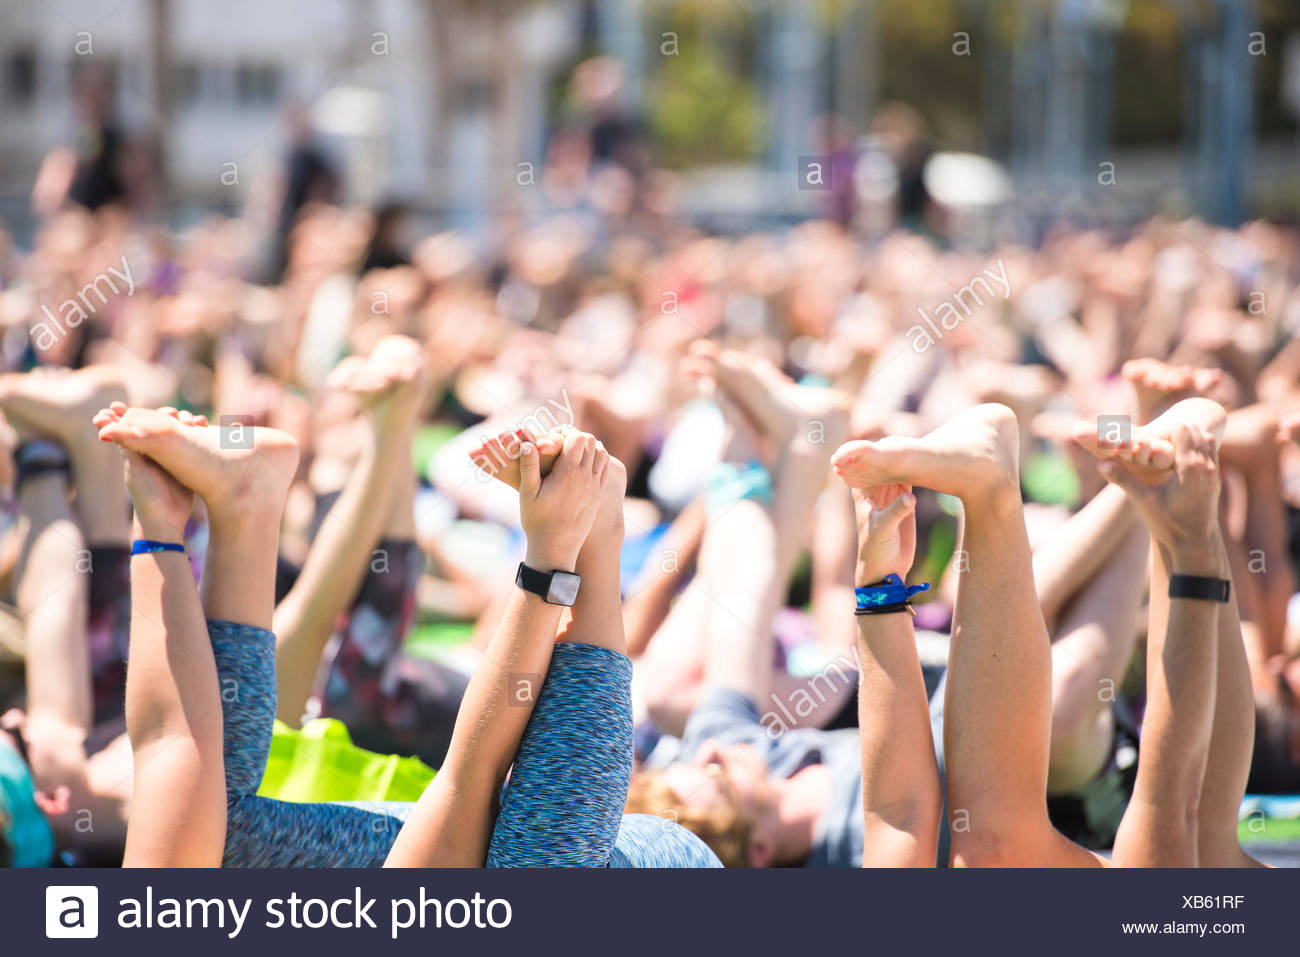 Close up of people hands and feet doing happy baby pose during outdoor yoga festival in Santa Monica, California, USA - Stock Image